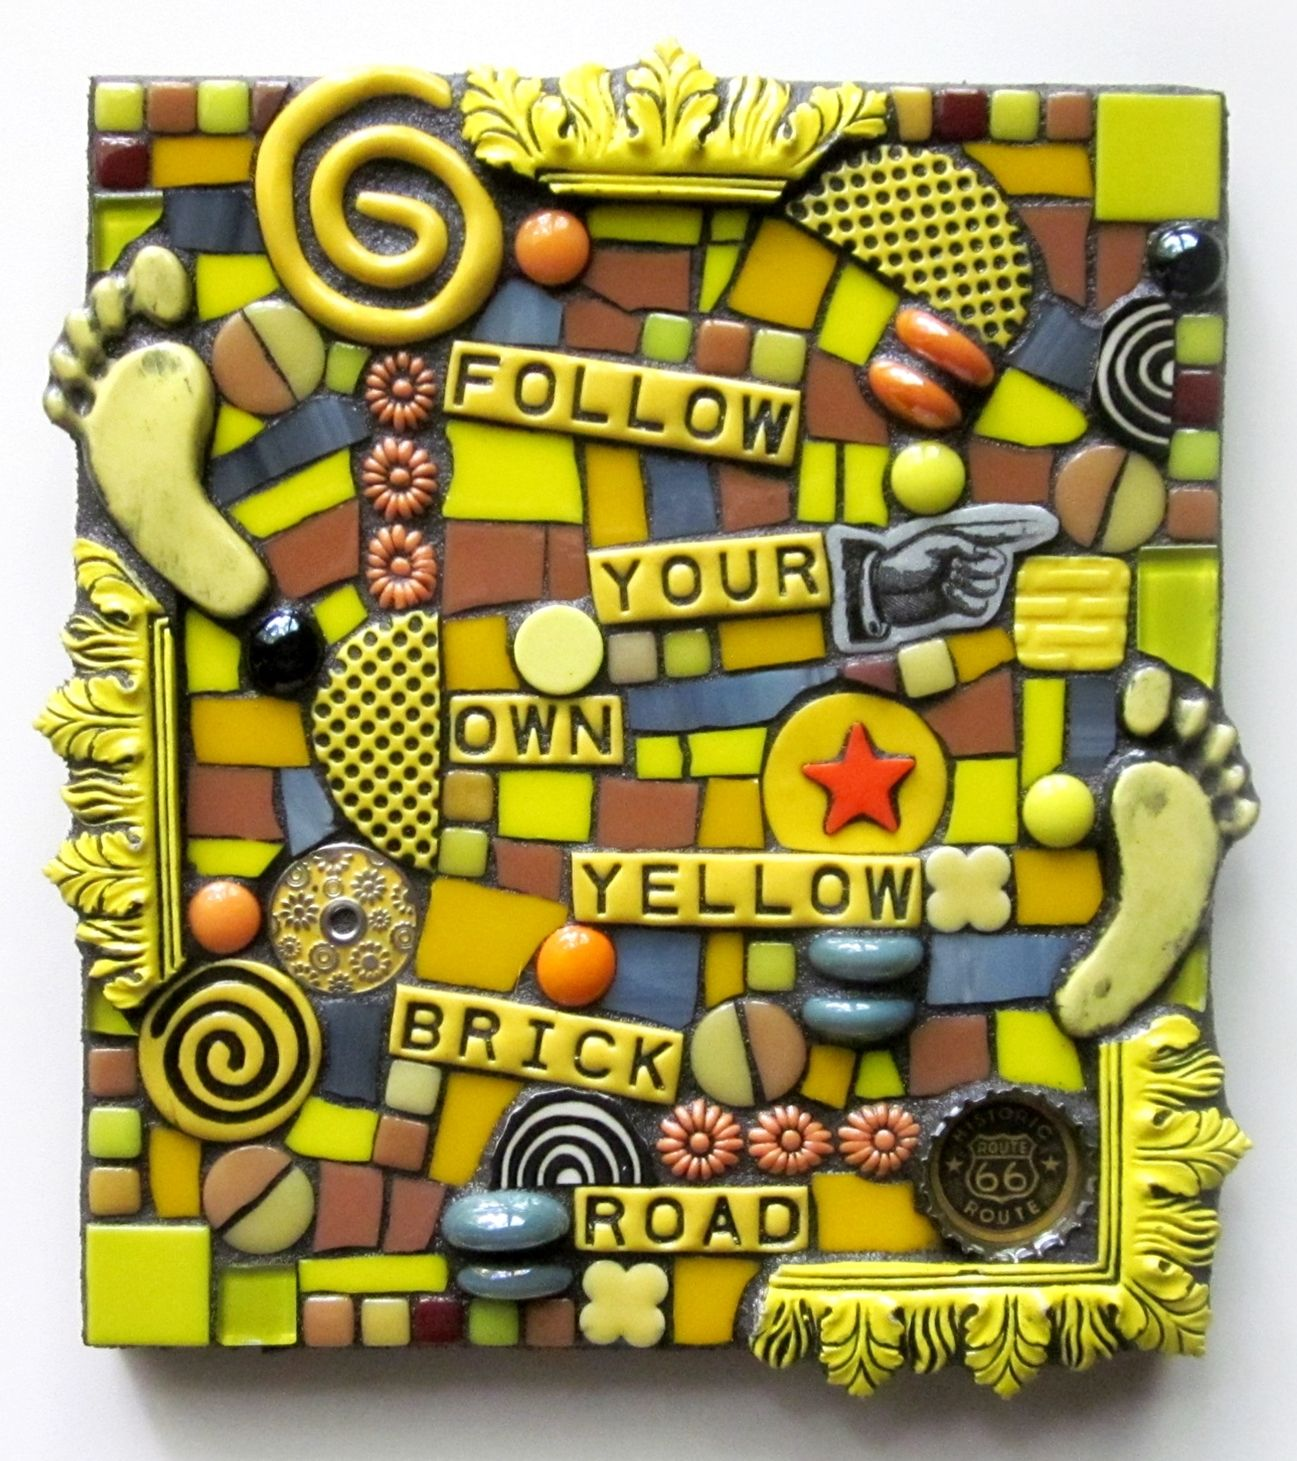 Follow Your Own Yellow Brick Road. (Small Handmade Mixed Media ...